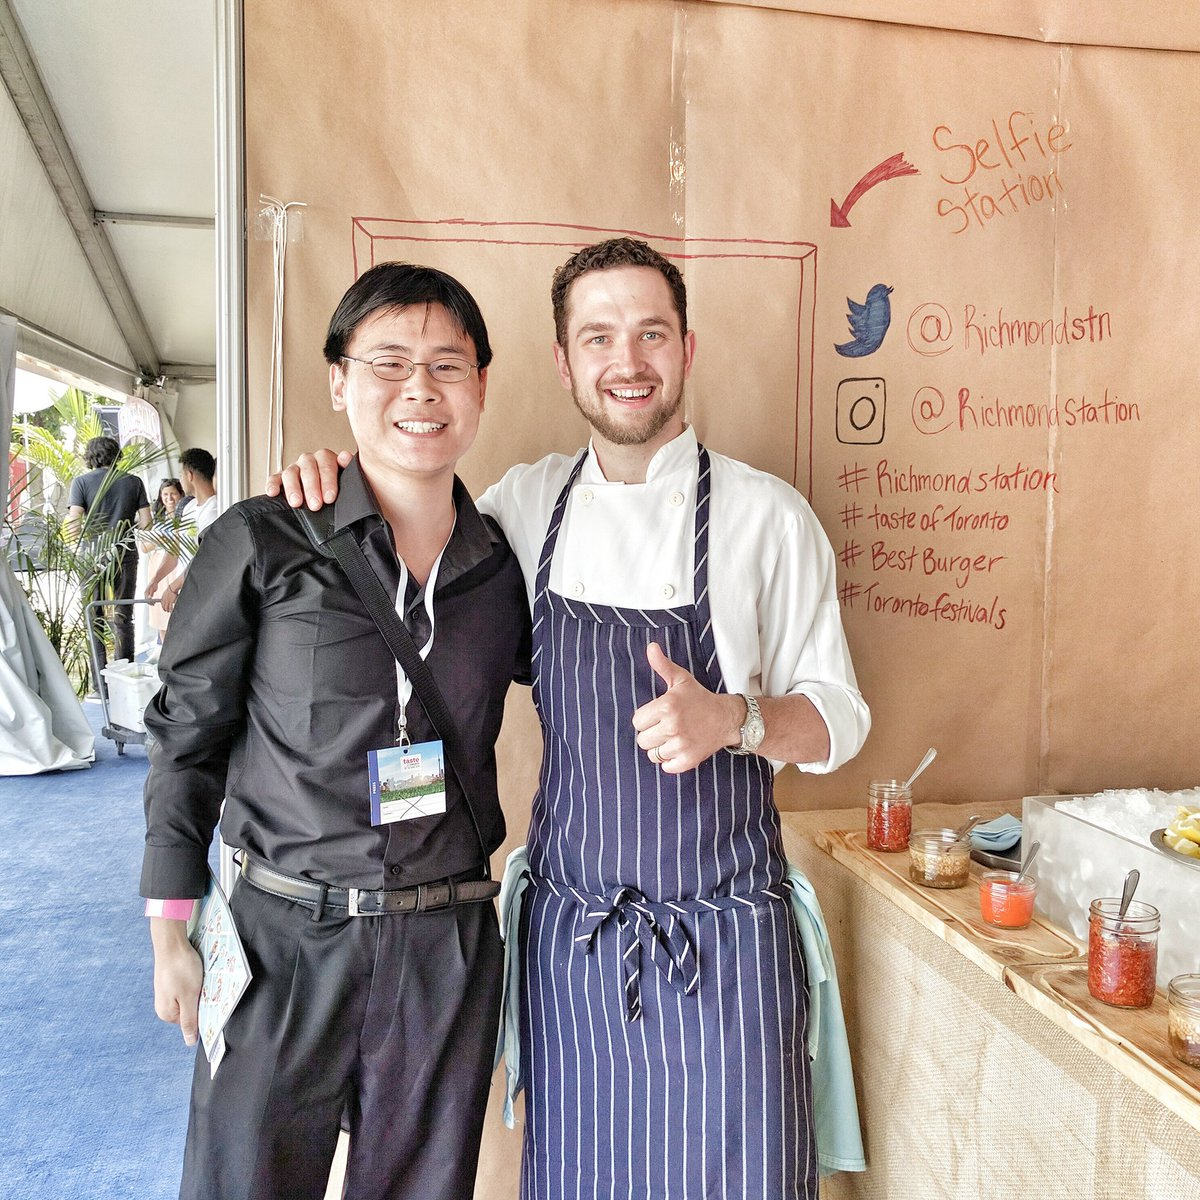 Chef Carl Henrich of Richmond Station with Travelling Foodie Raymond Cua at Taste of Toronto in Toronto, Ontario